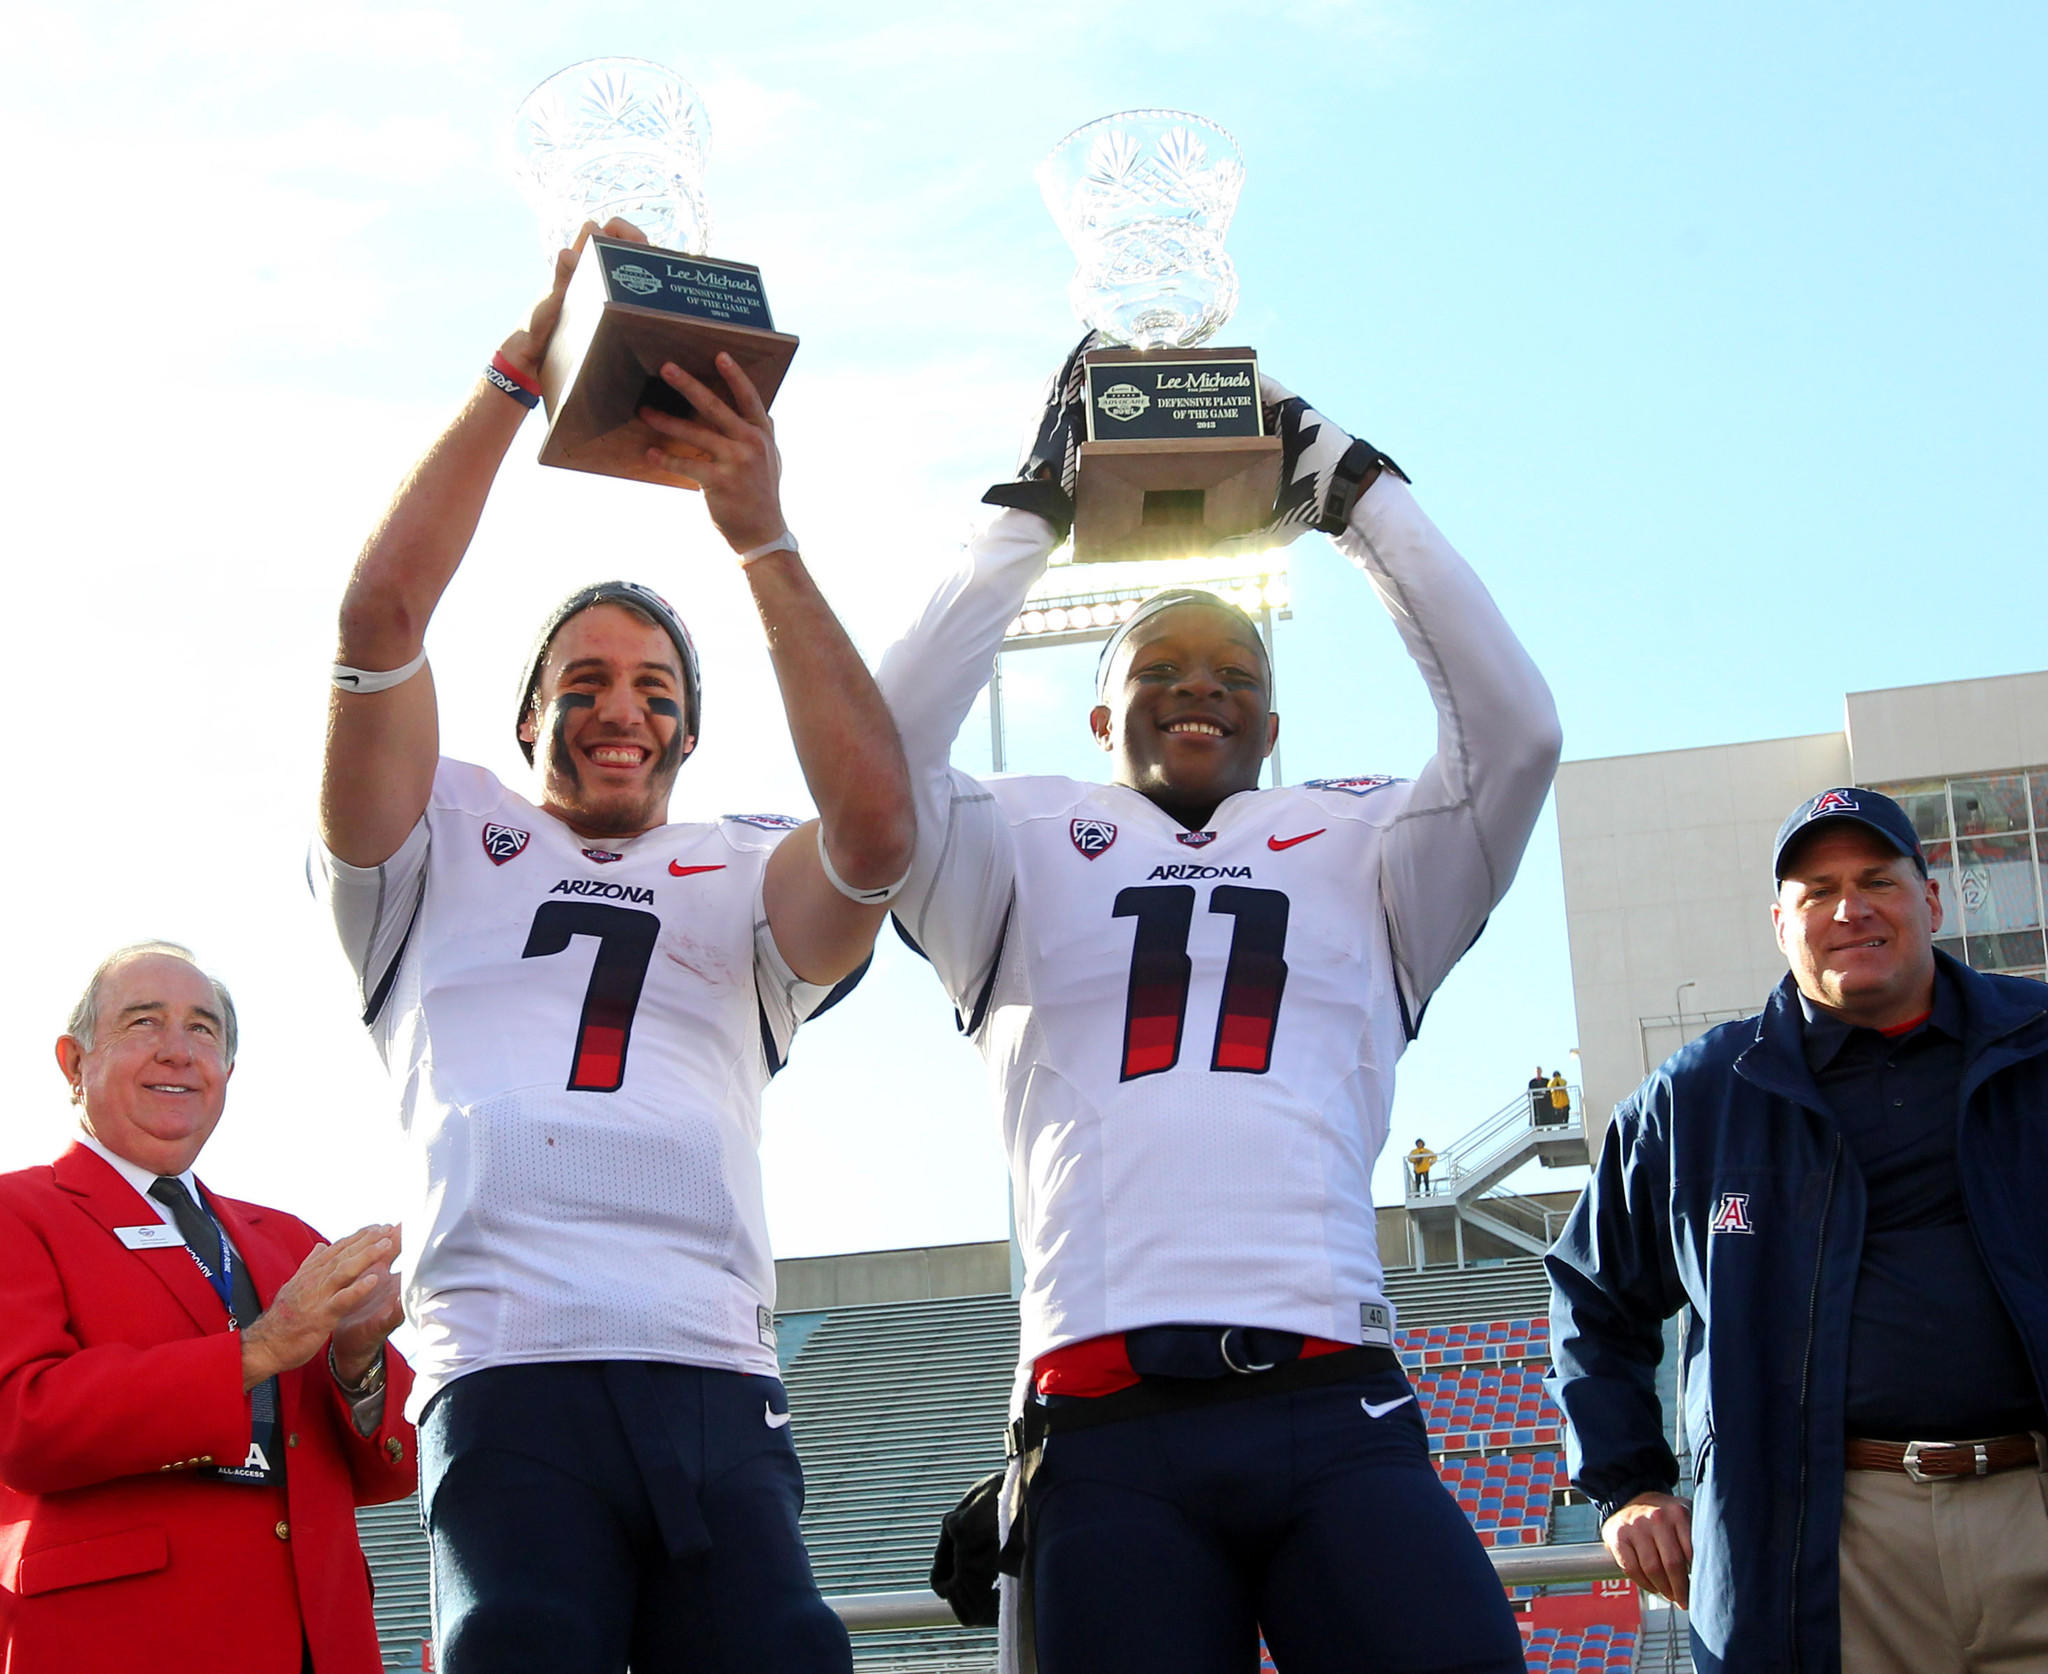 Arizona quarterback B.J. Denker (7) and safety William Parks hold up the offensive player of the game and defensive player of the game trophies at Independence Stadium.